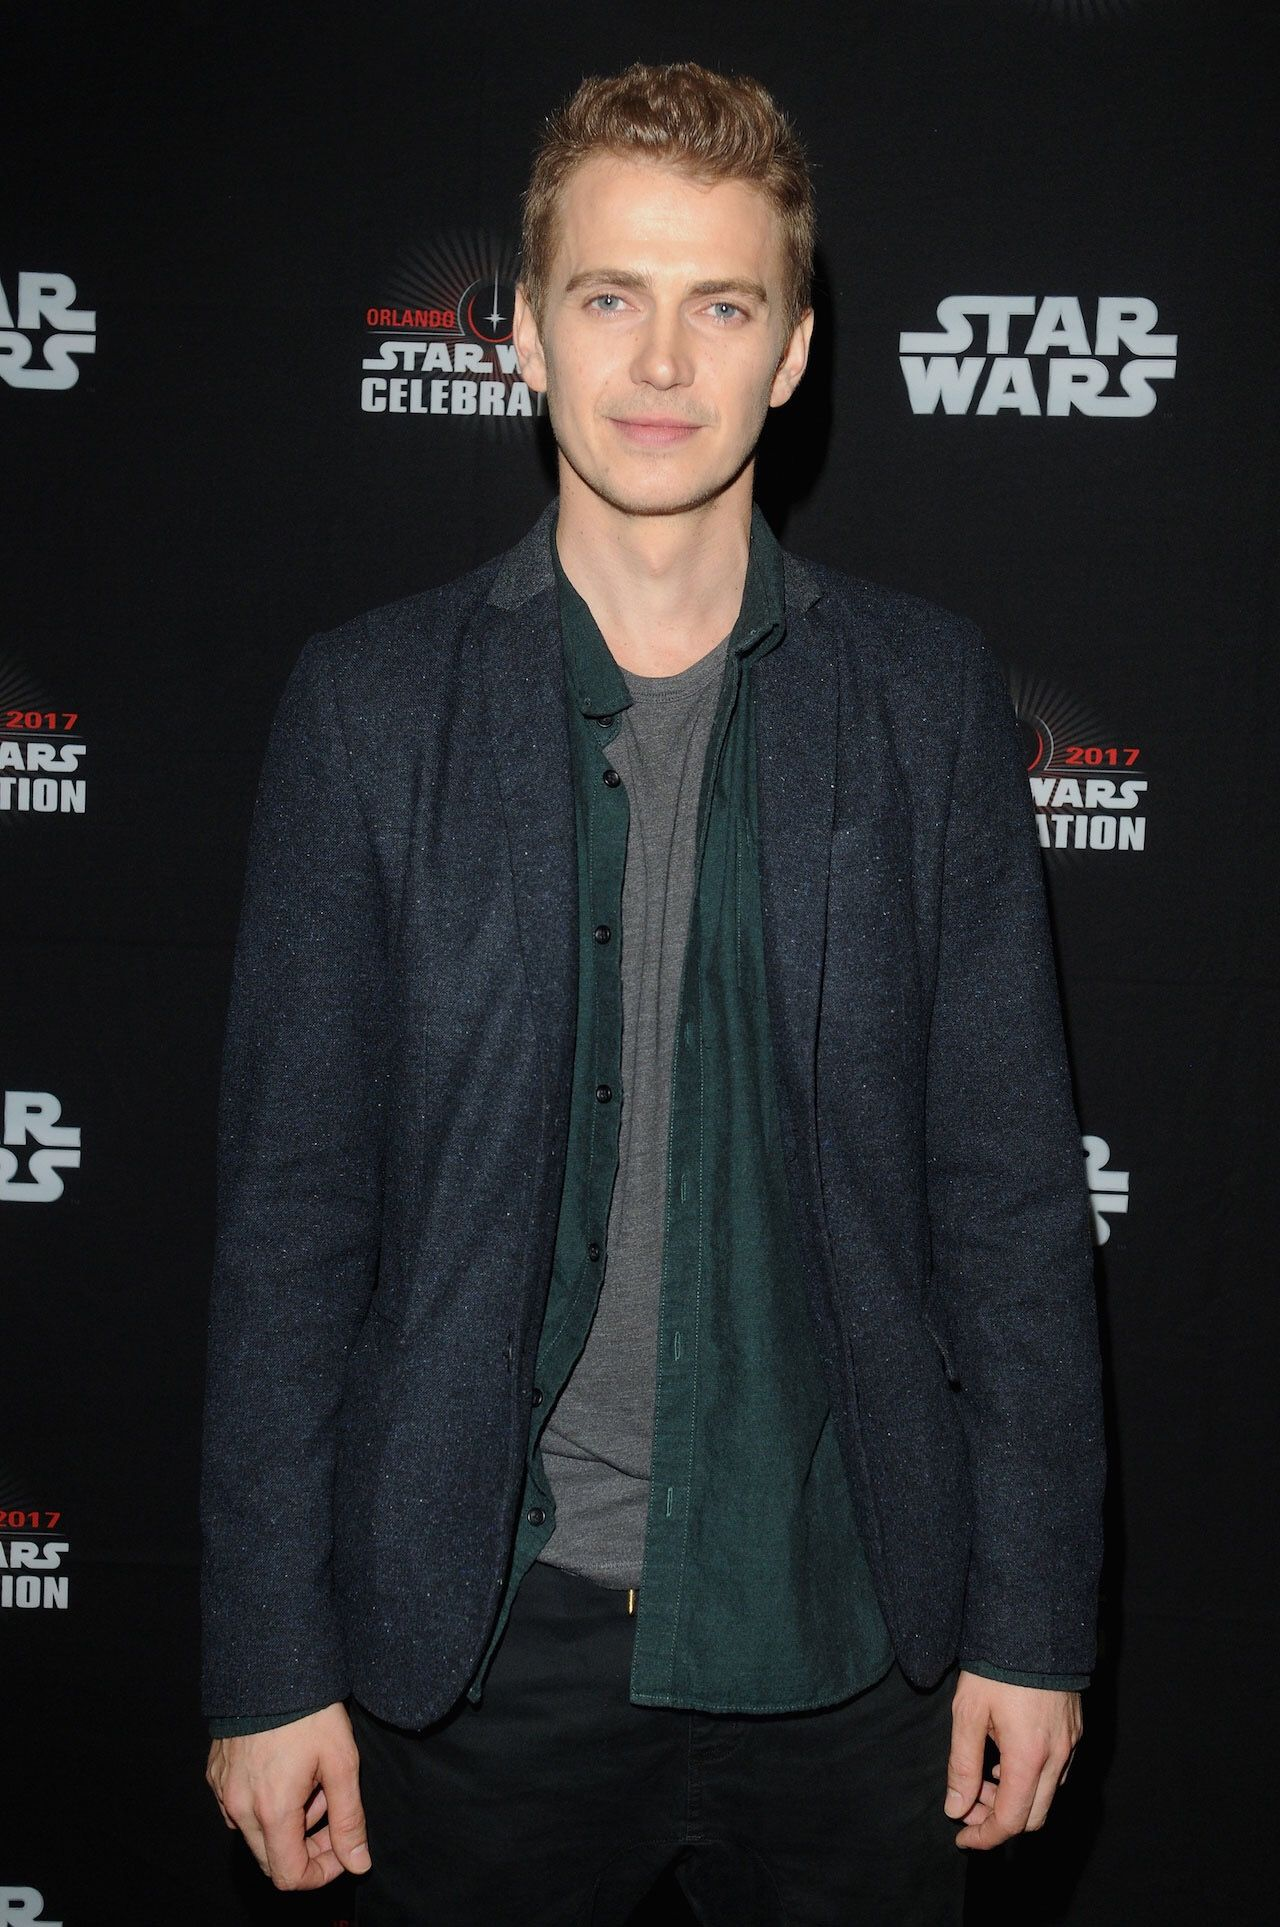 Image result for star wars celebration 2017 hayden christensen